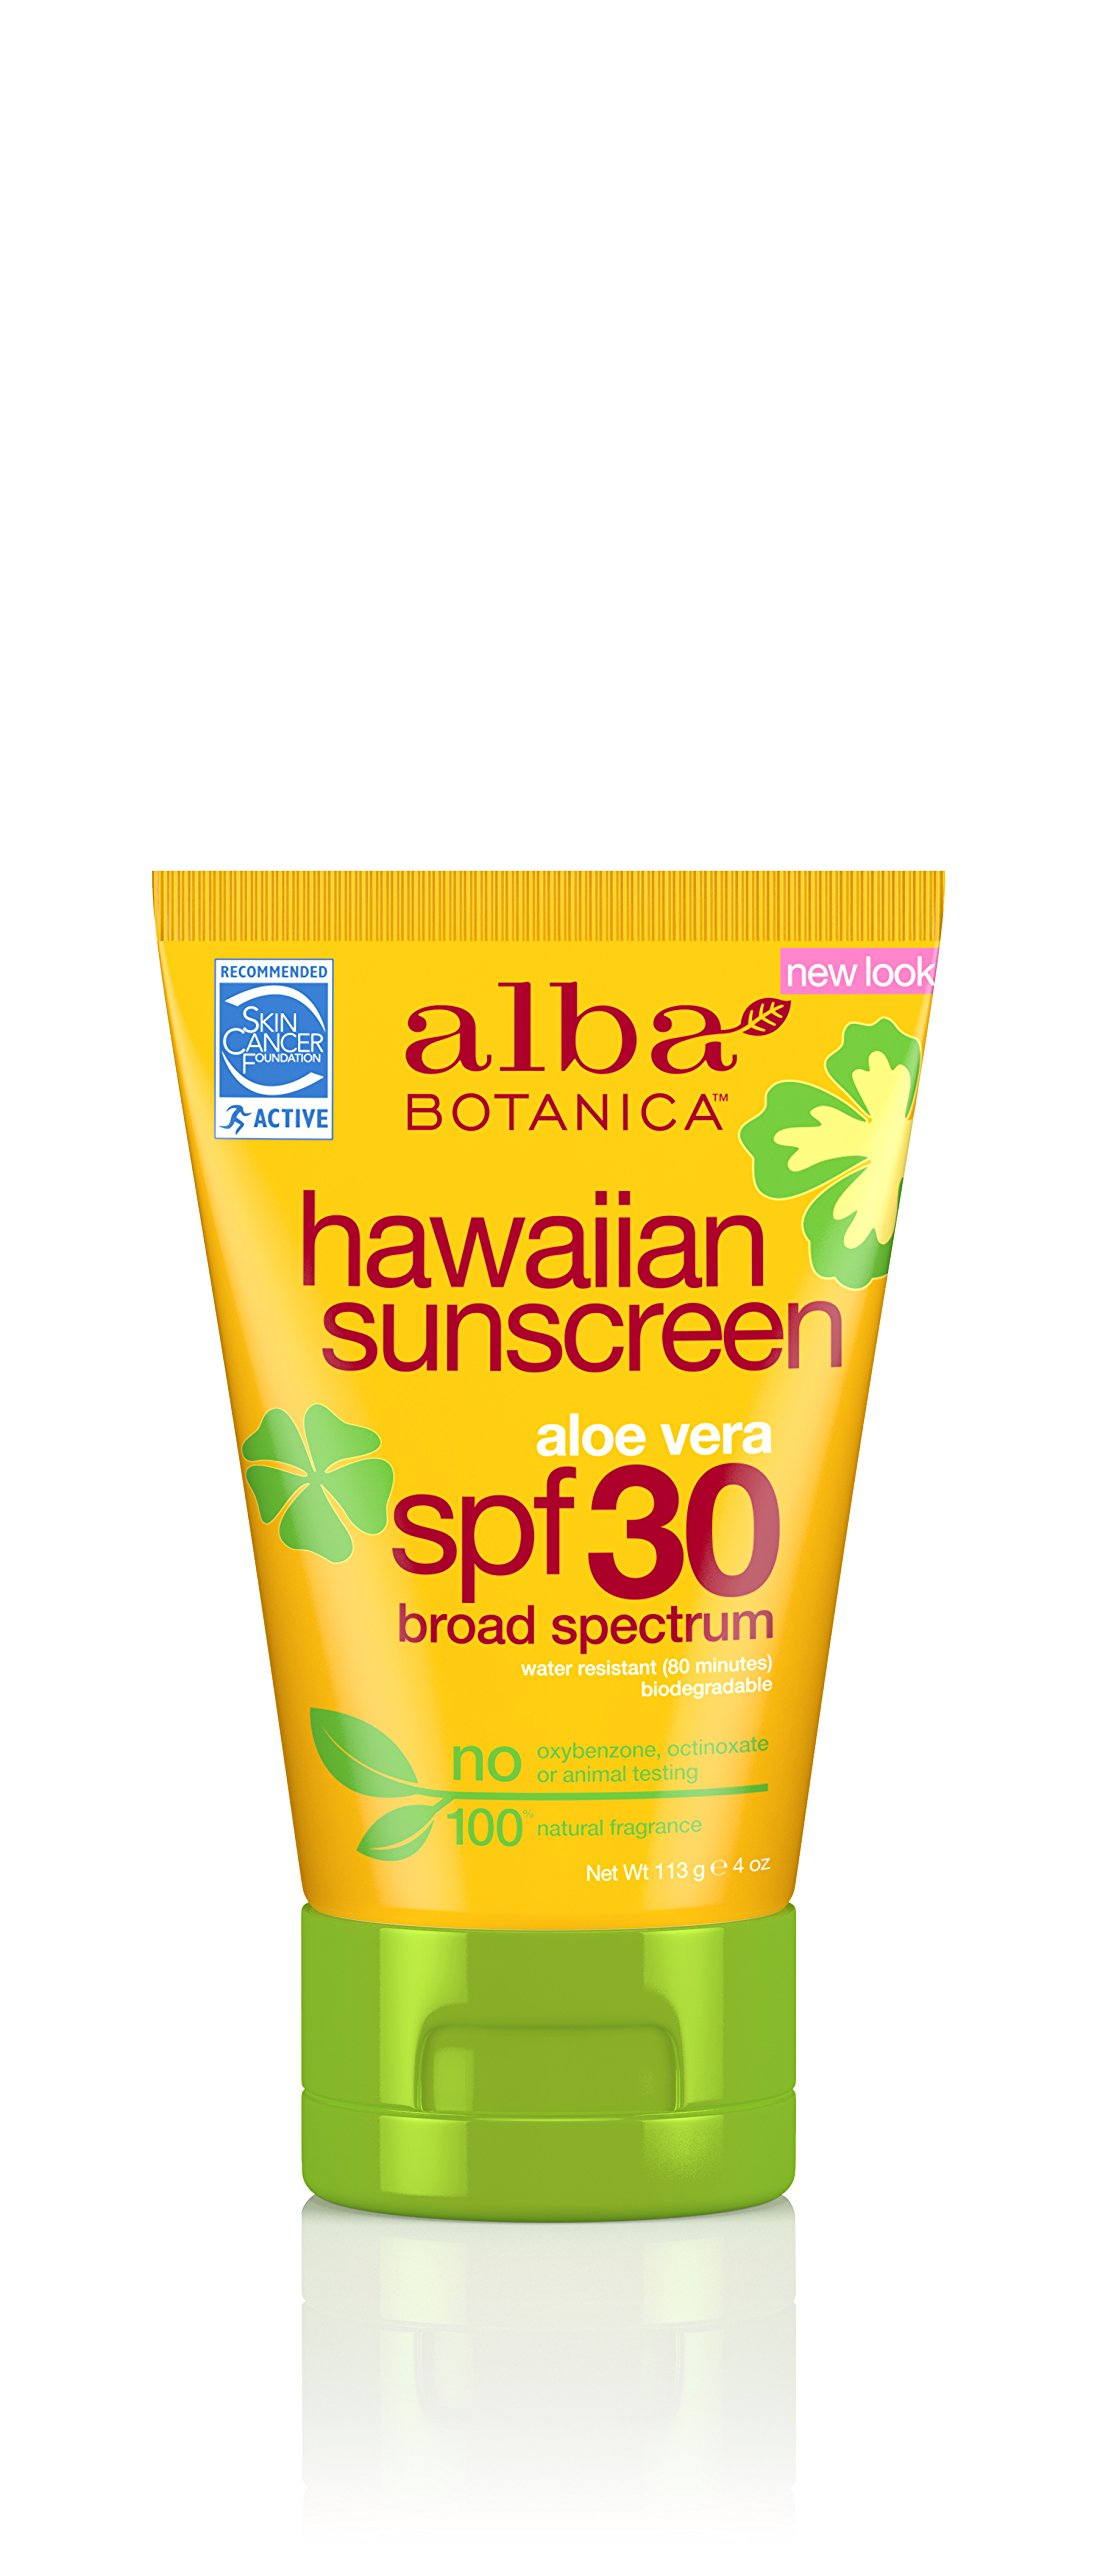 Alba Botanica Hawaiian, Aloe Vera Sunscreen SPF 30, 4 Ounce